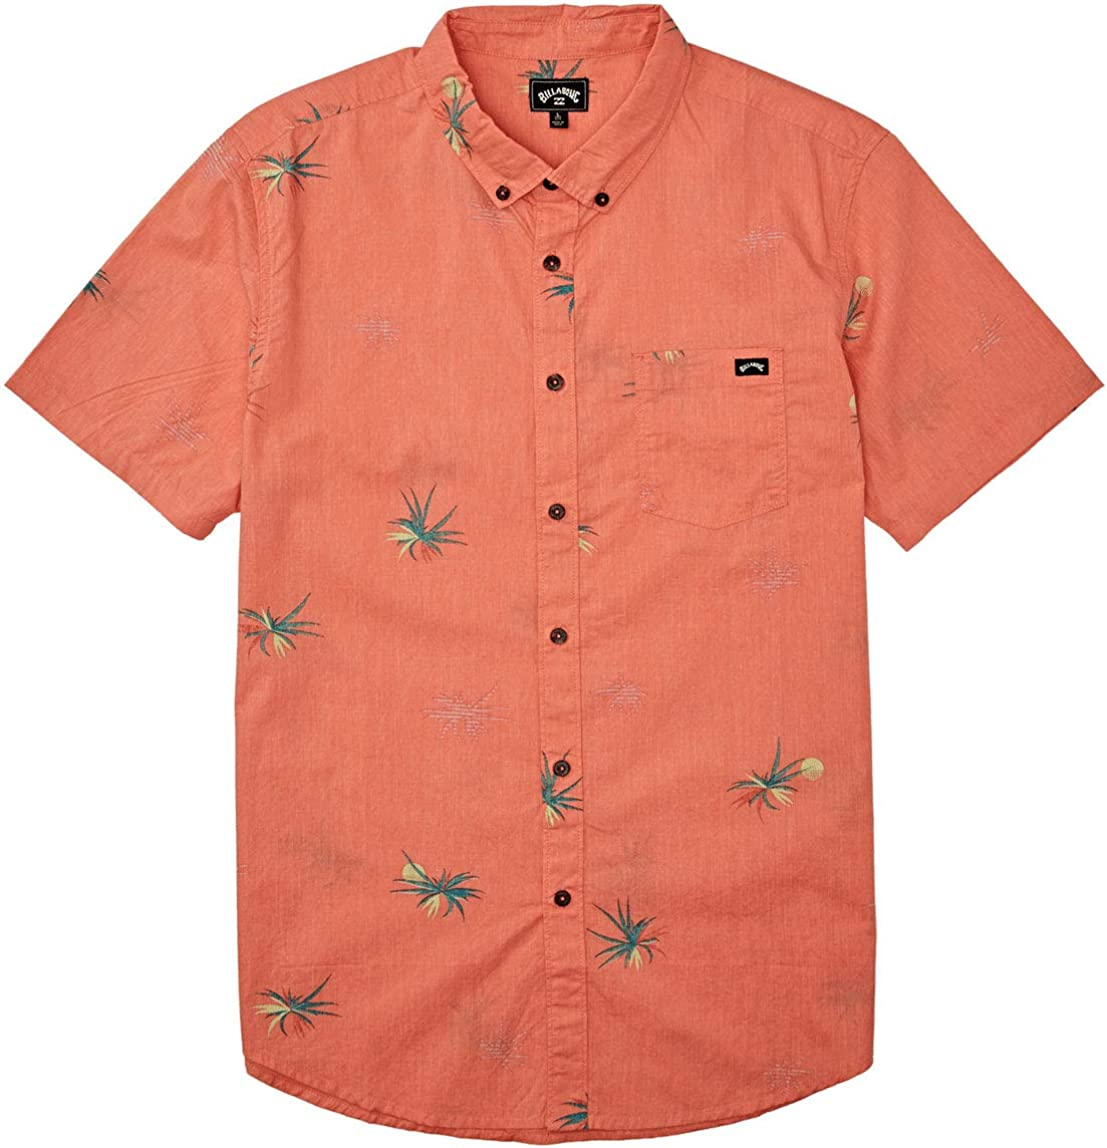 Billabong Men's Sundays Woven Floral and Small Scale Printed Pattern Short Sleeve Shirt